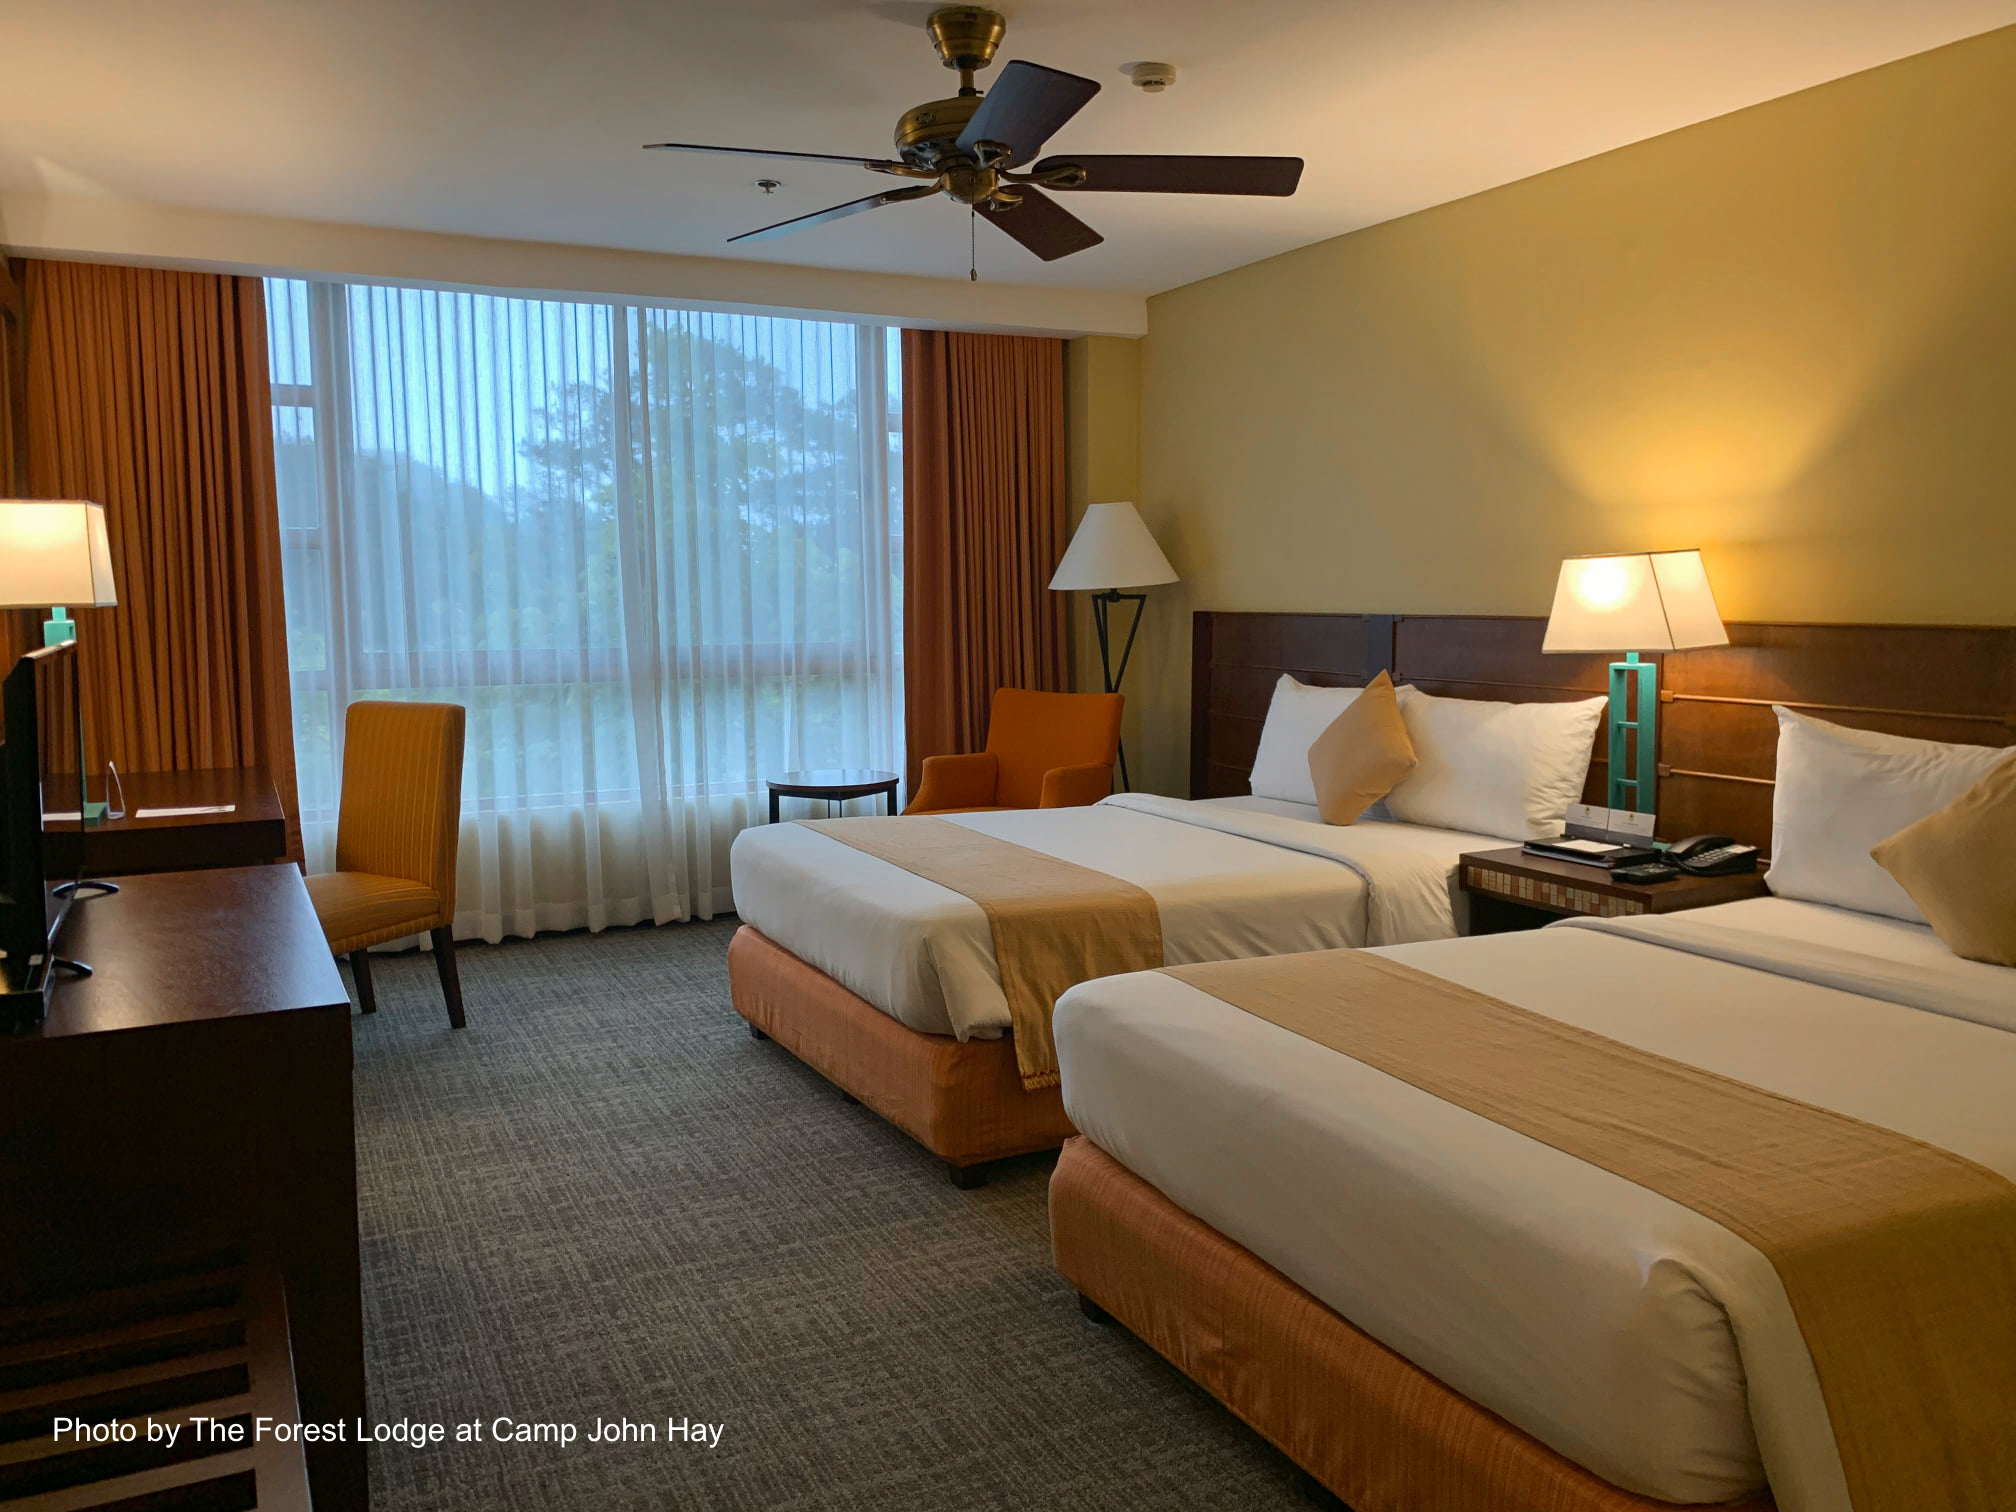 Beautiful room at The Forest Lodge in Camp John Hay